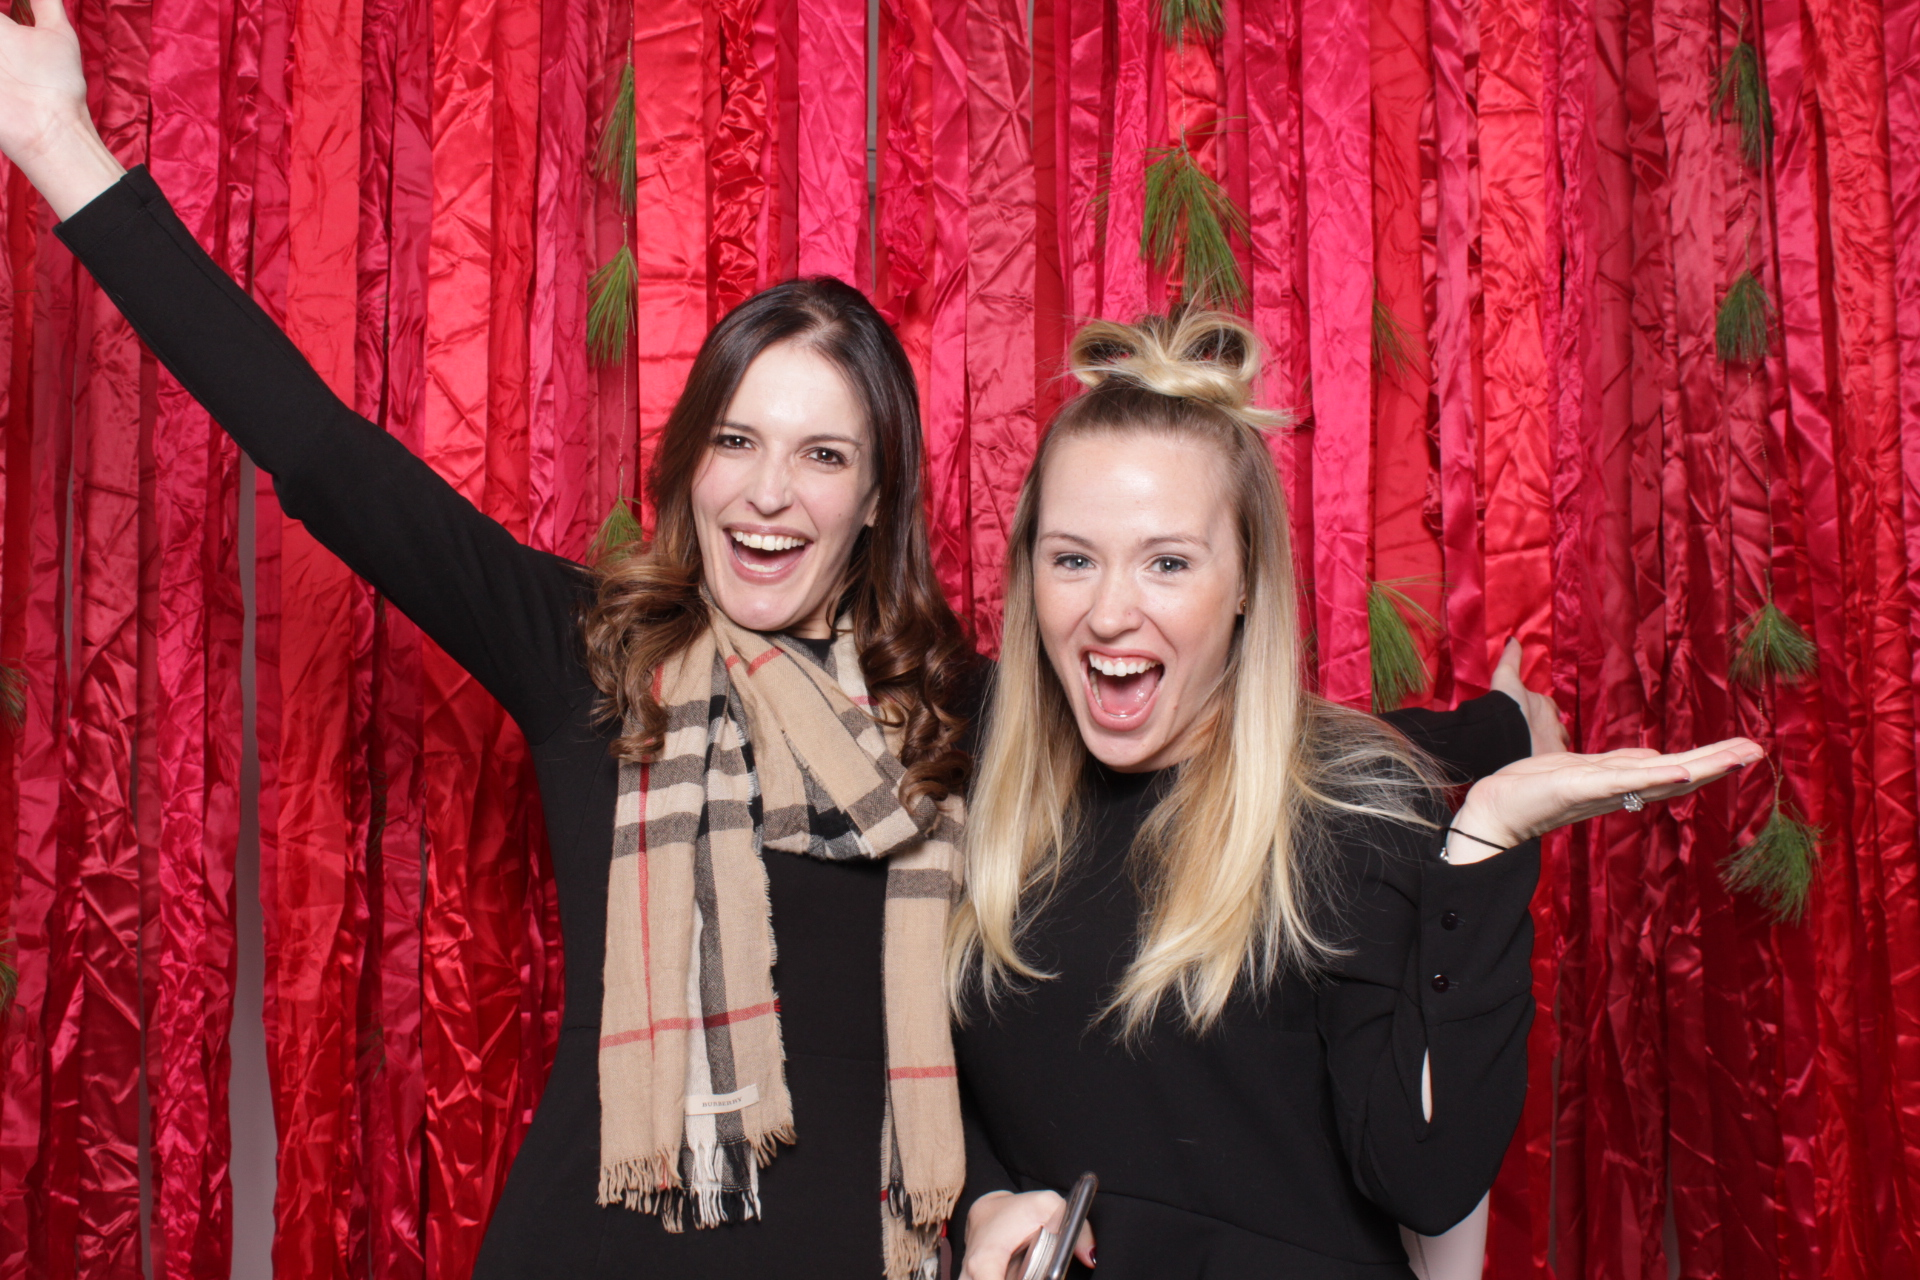 Hutton_House_Minneapolis_Photo_booth_rentals (4).jpg